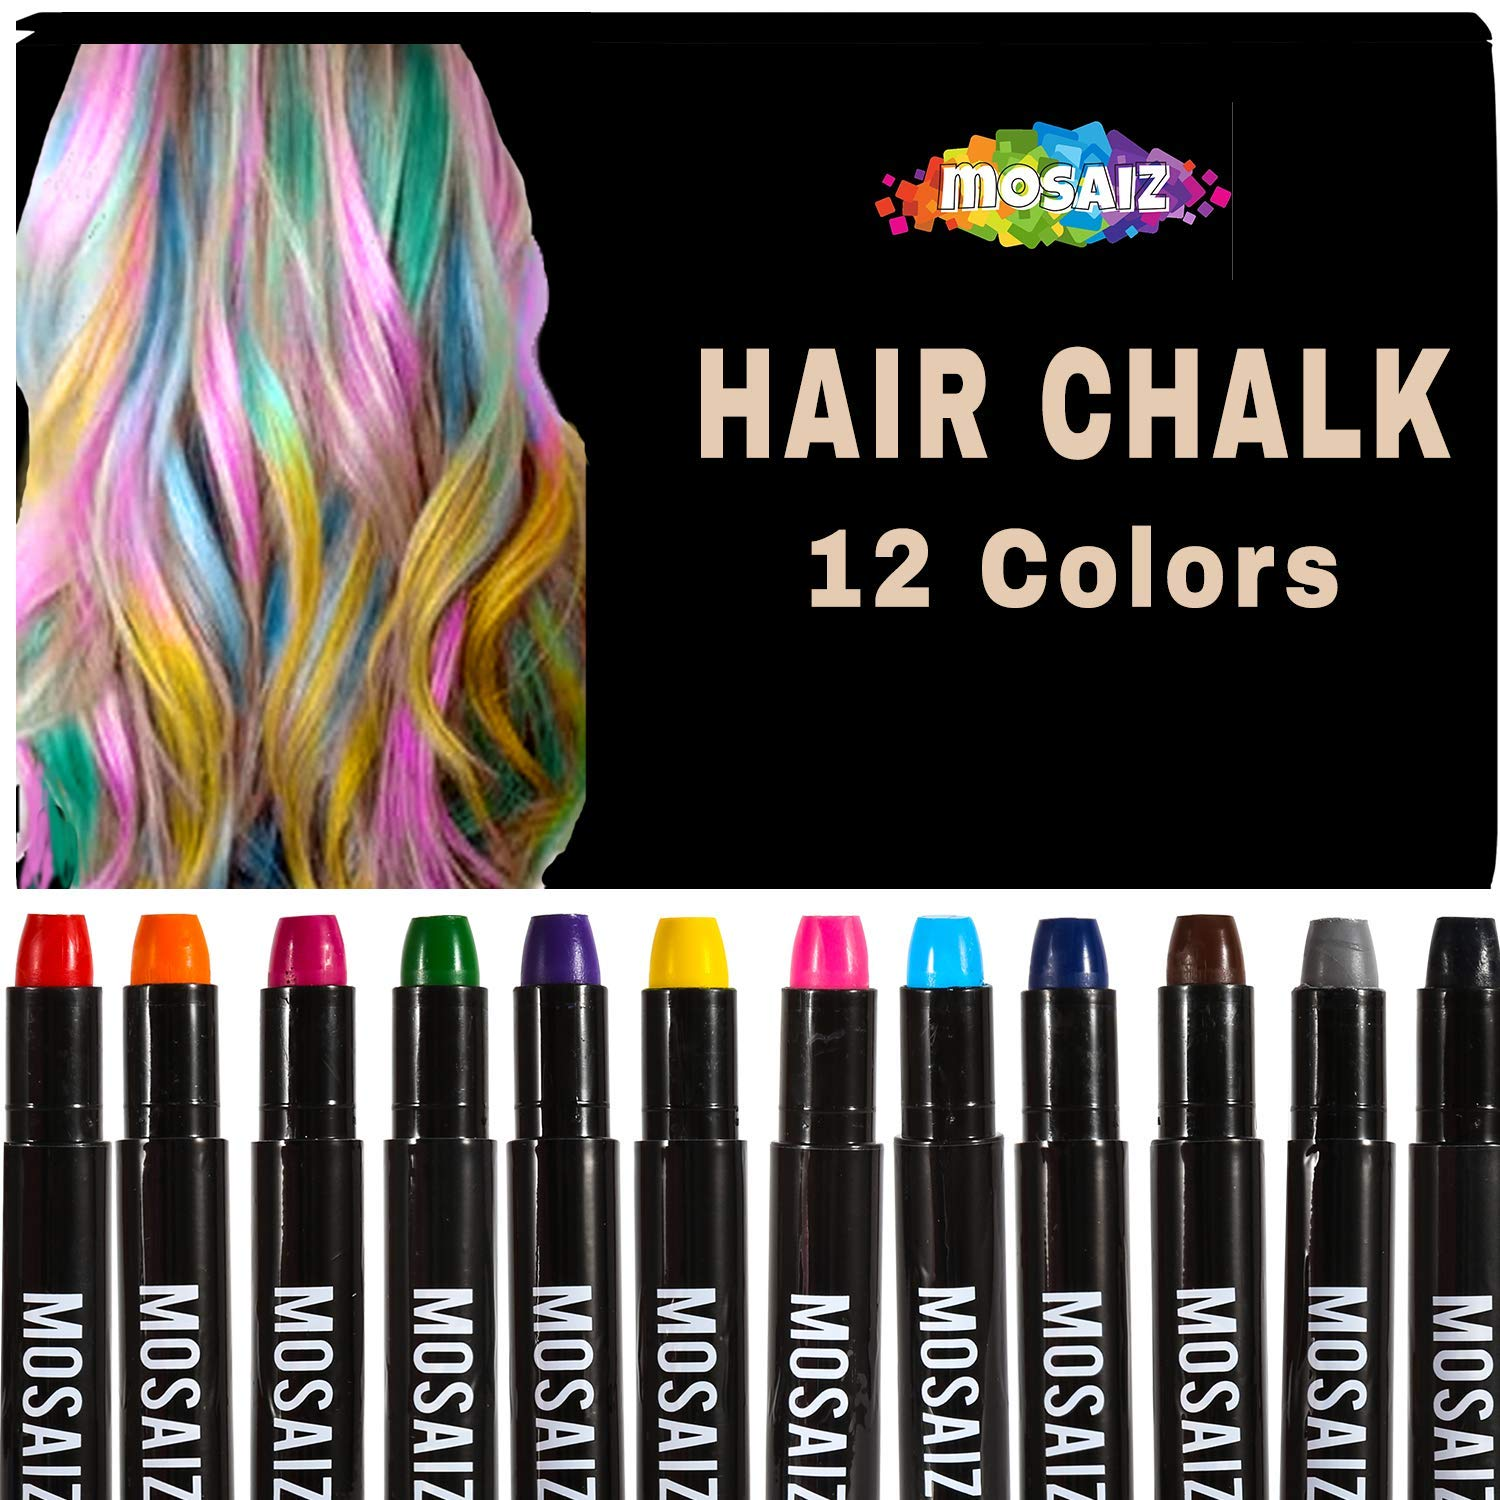 Christmas Gifts For Girls Age 9 10.Hair Chalk For Girls And Boys 12 Colors With Black And Brown